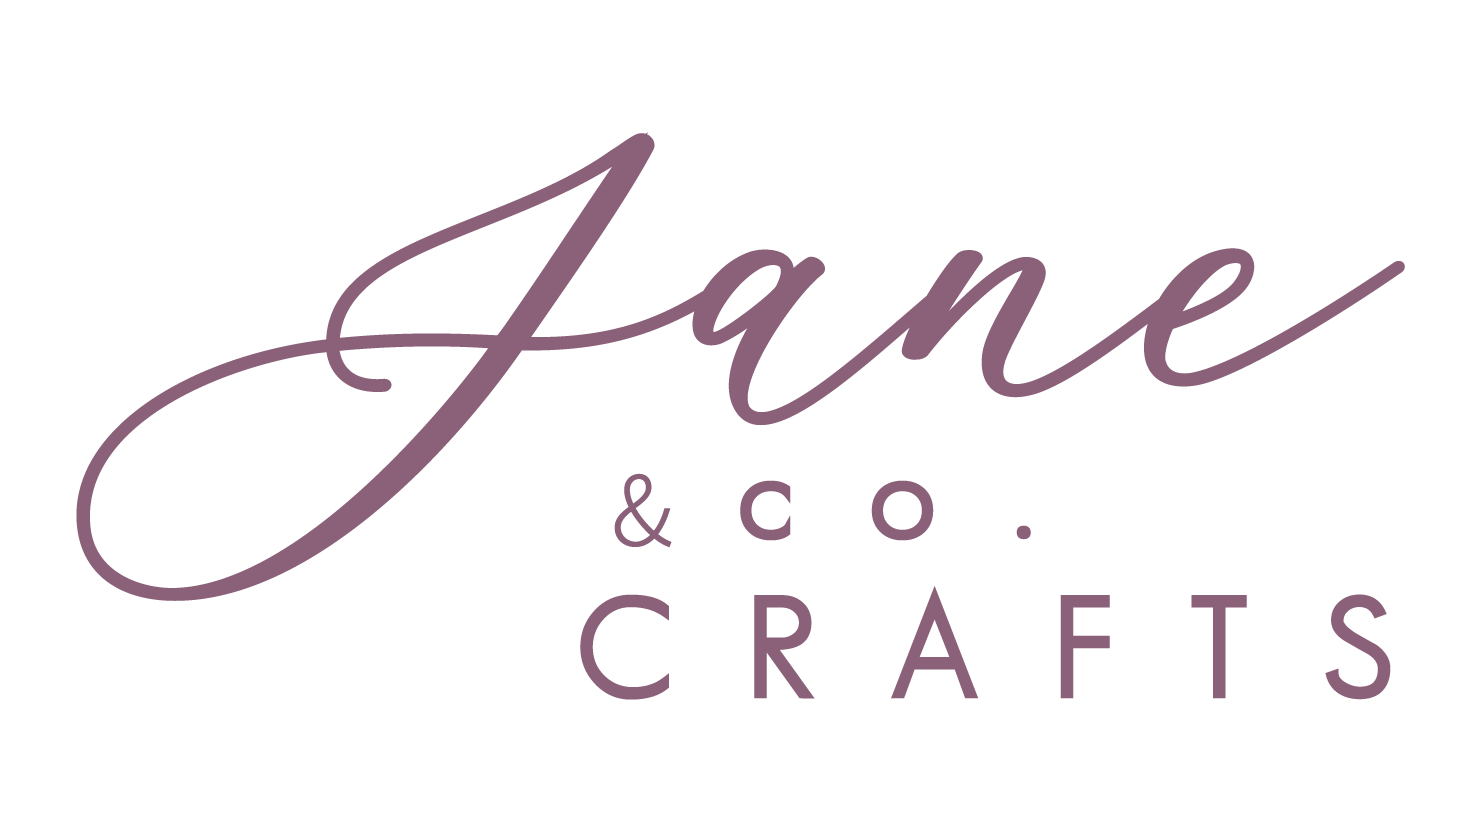 Jane & Co. Crafts